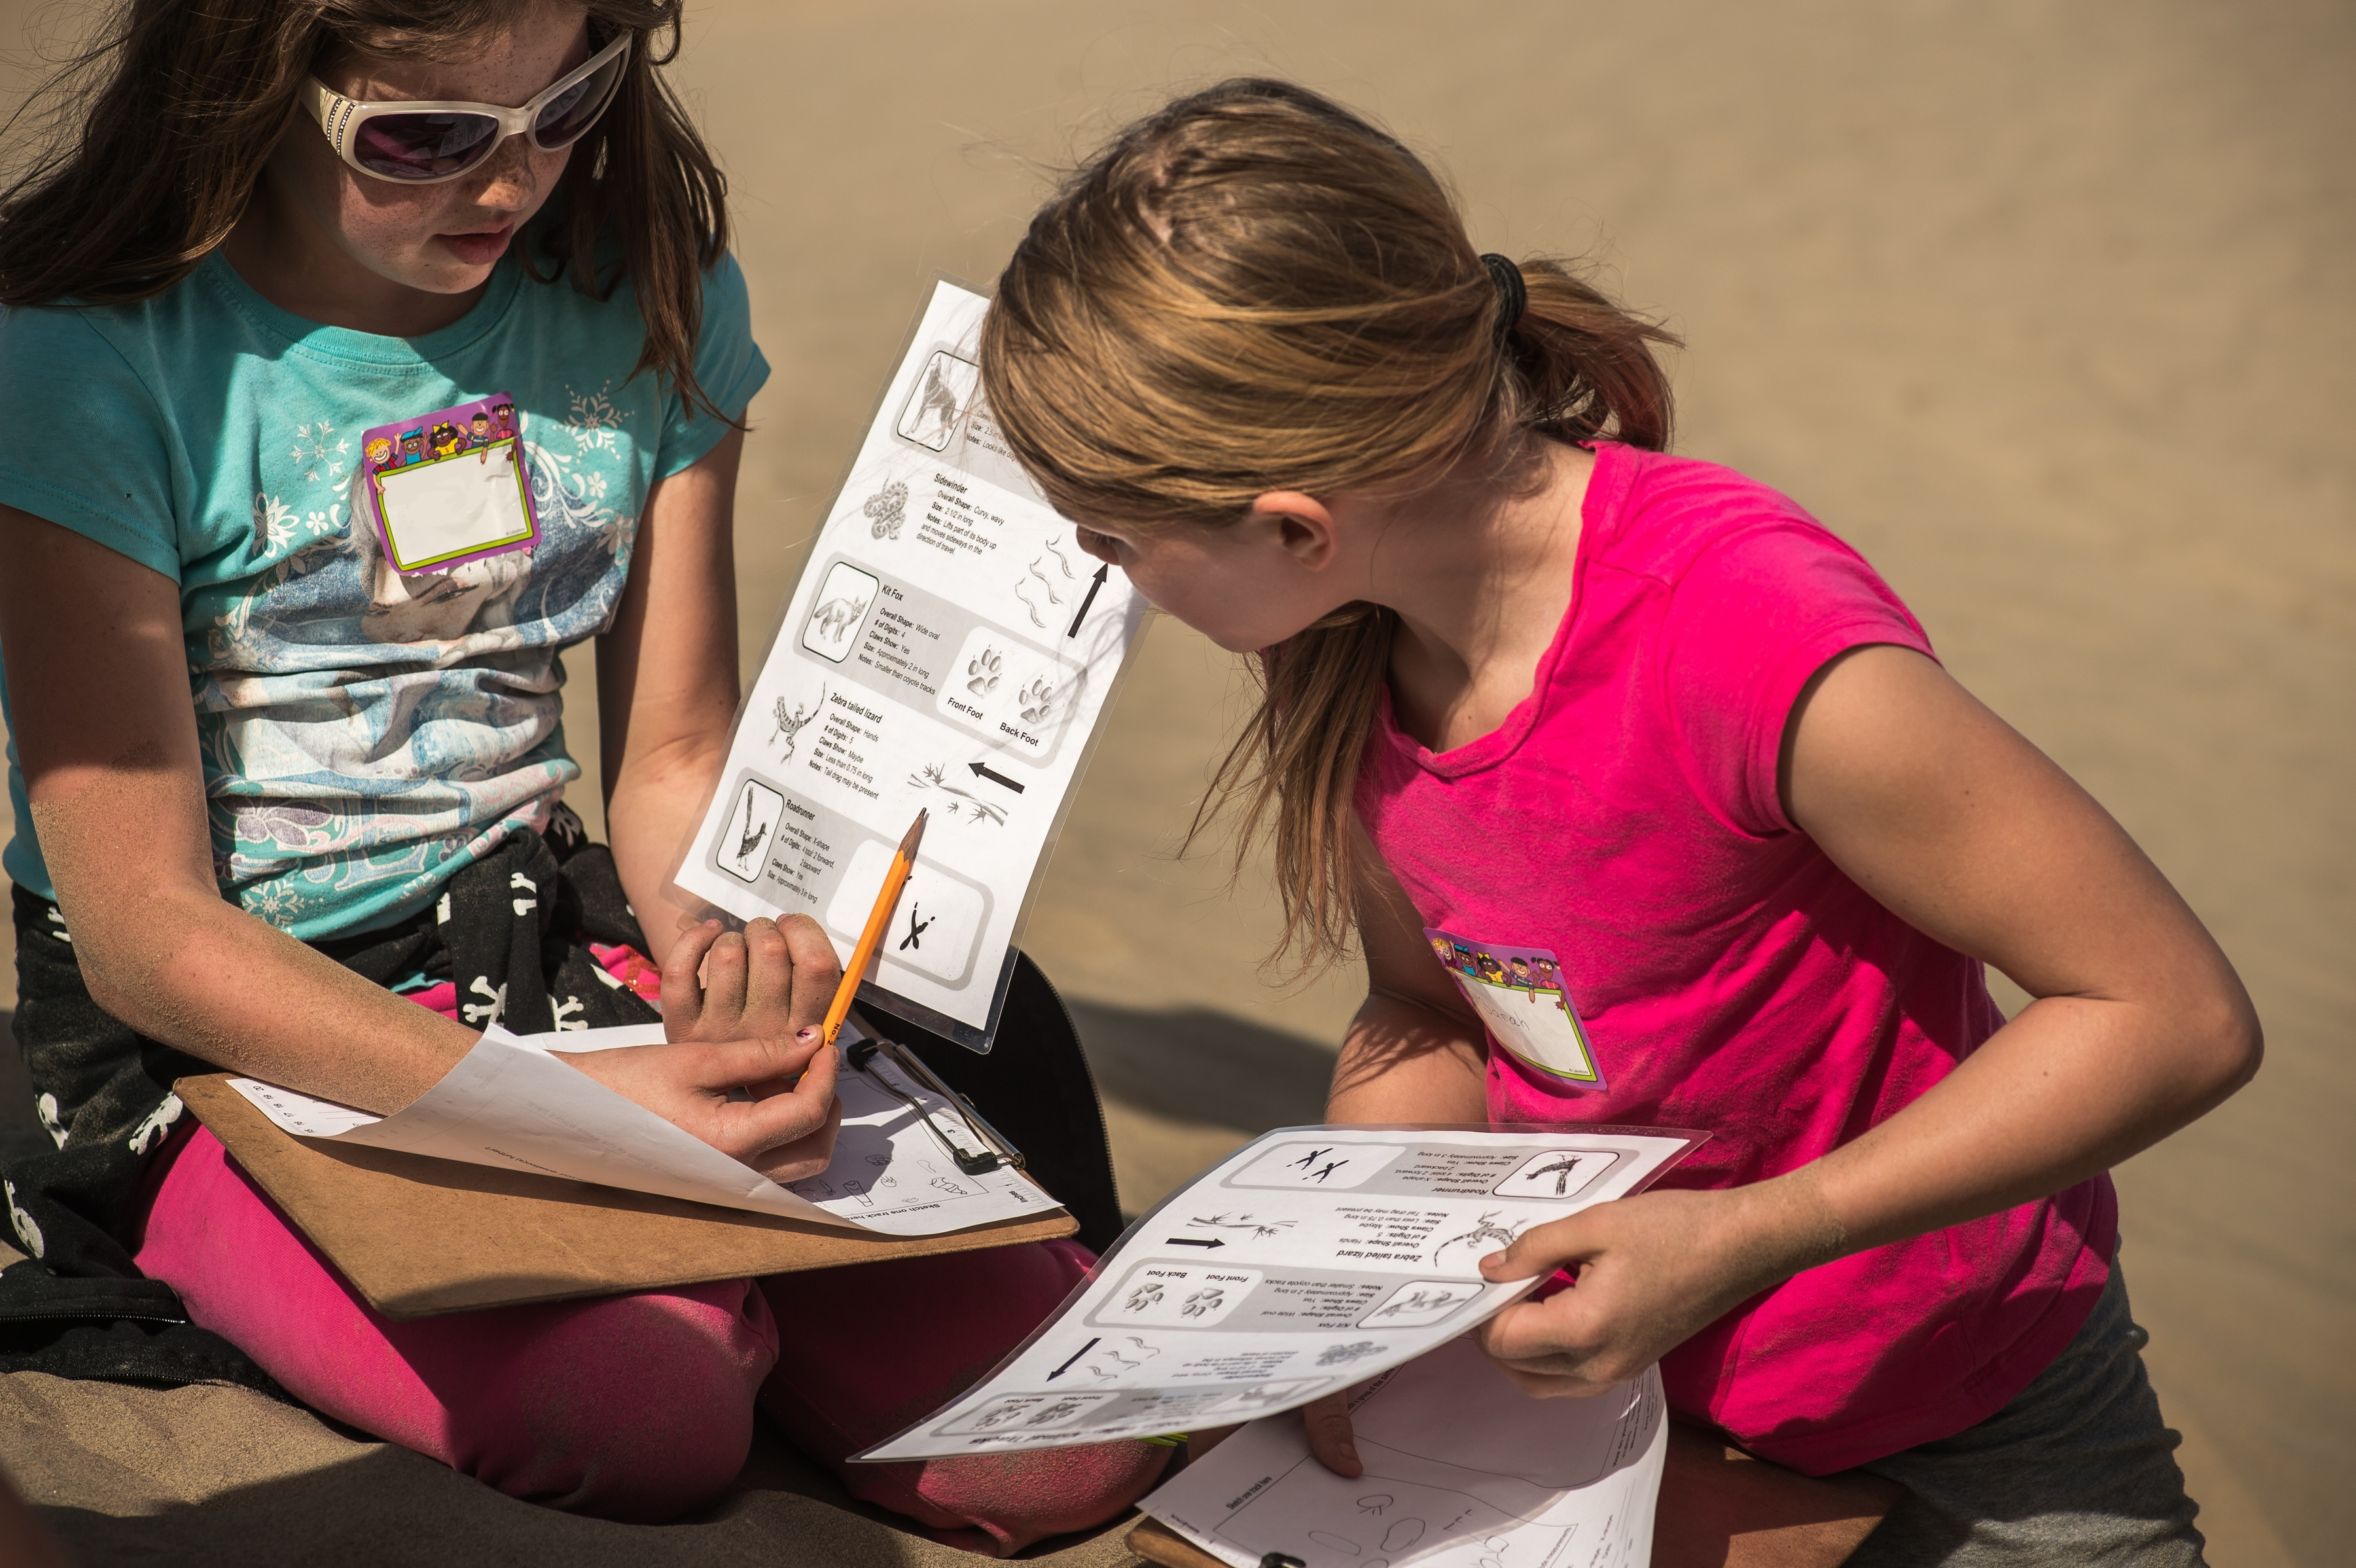 Two students look at an animal tracking field guide.